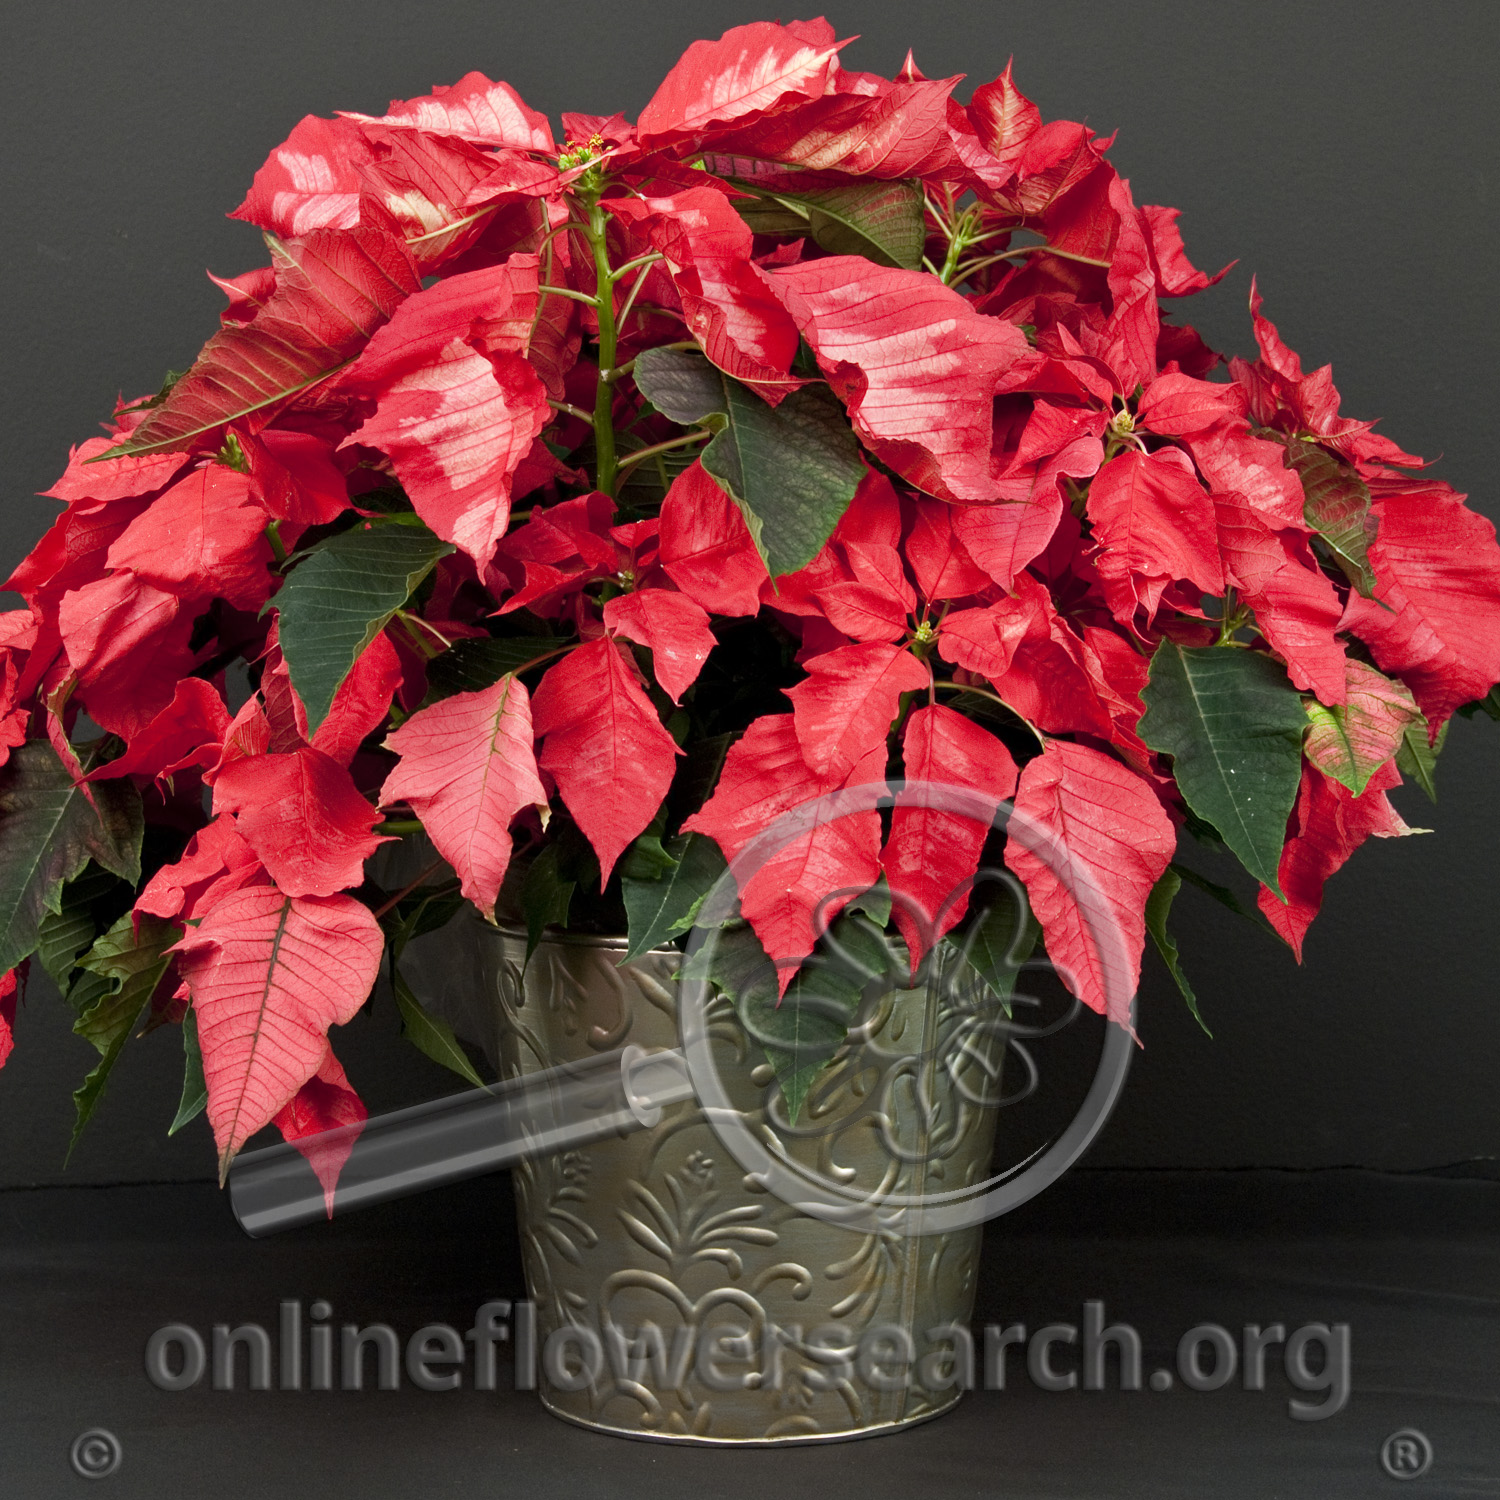 Poinsettia Ice Punch Online Flower Search